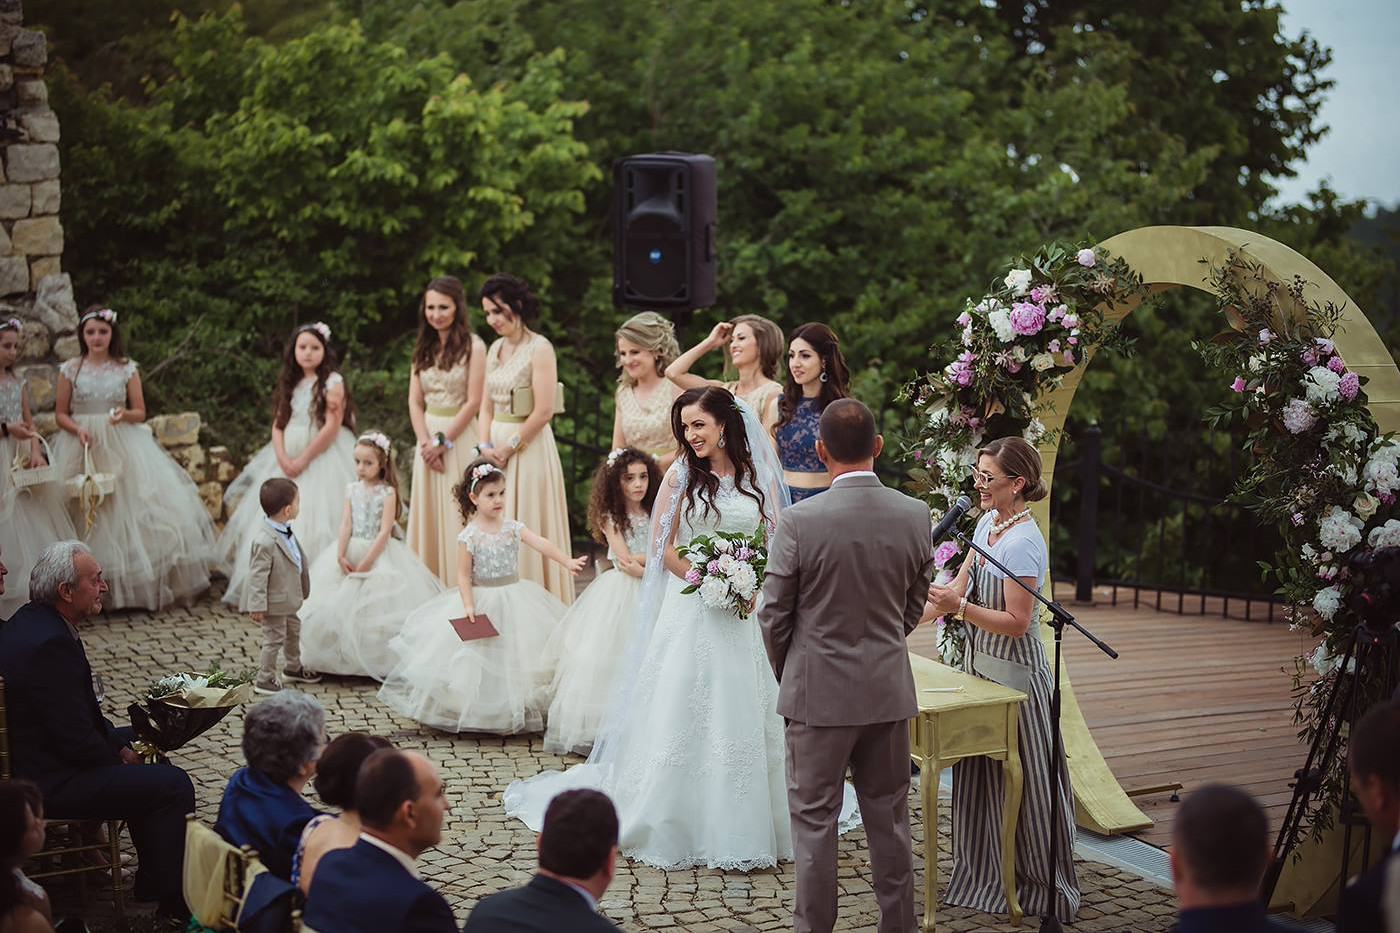 Wedding ceremony by Antoaneta Alexandrova - Weddings in Granada